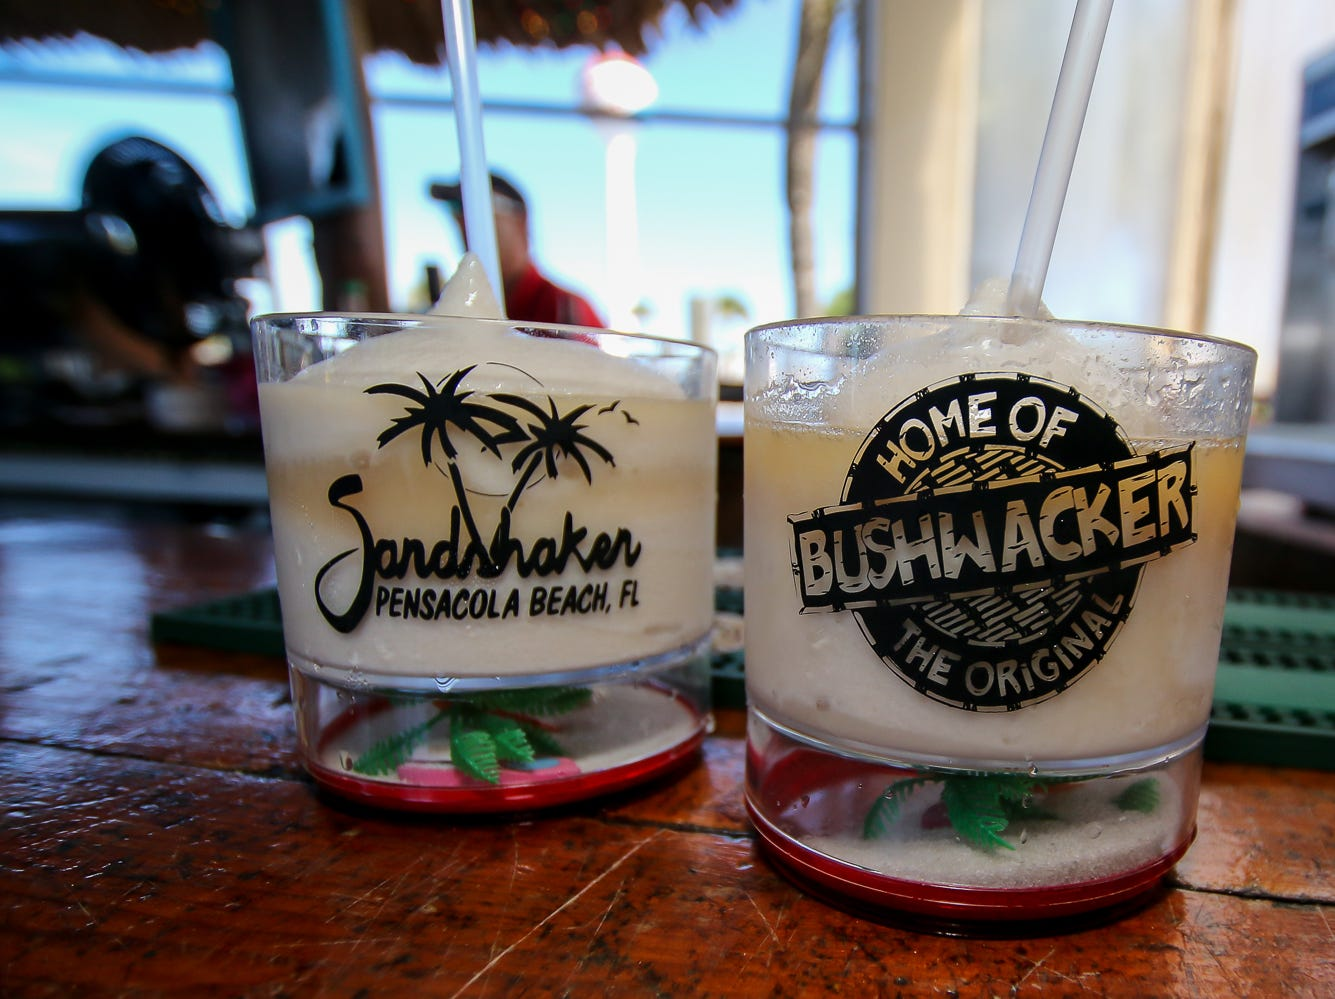 The Bushwacker Festival at the Sandshaker Lounge on Pensacola Beach on Saturday, August 4, 2018.